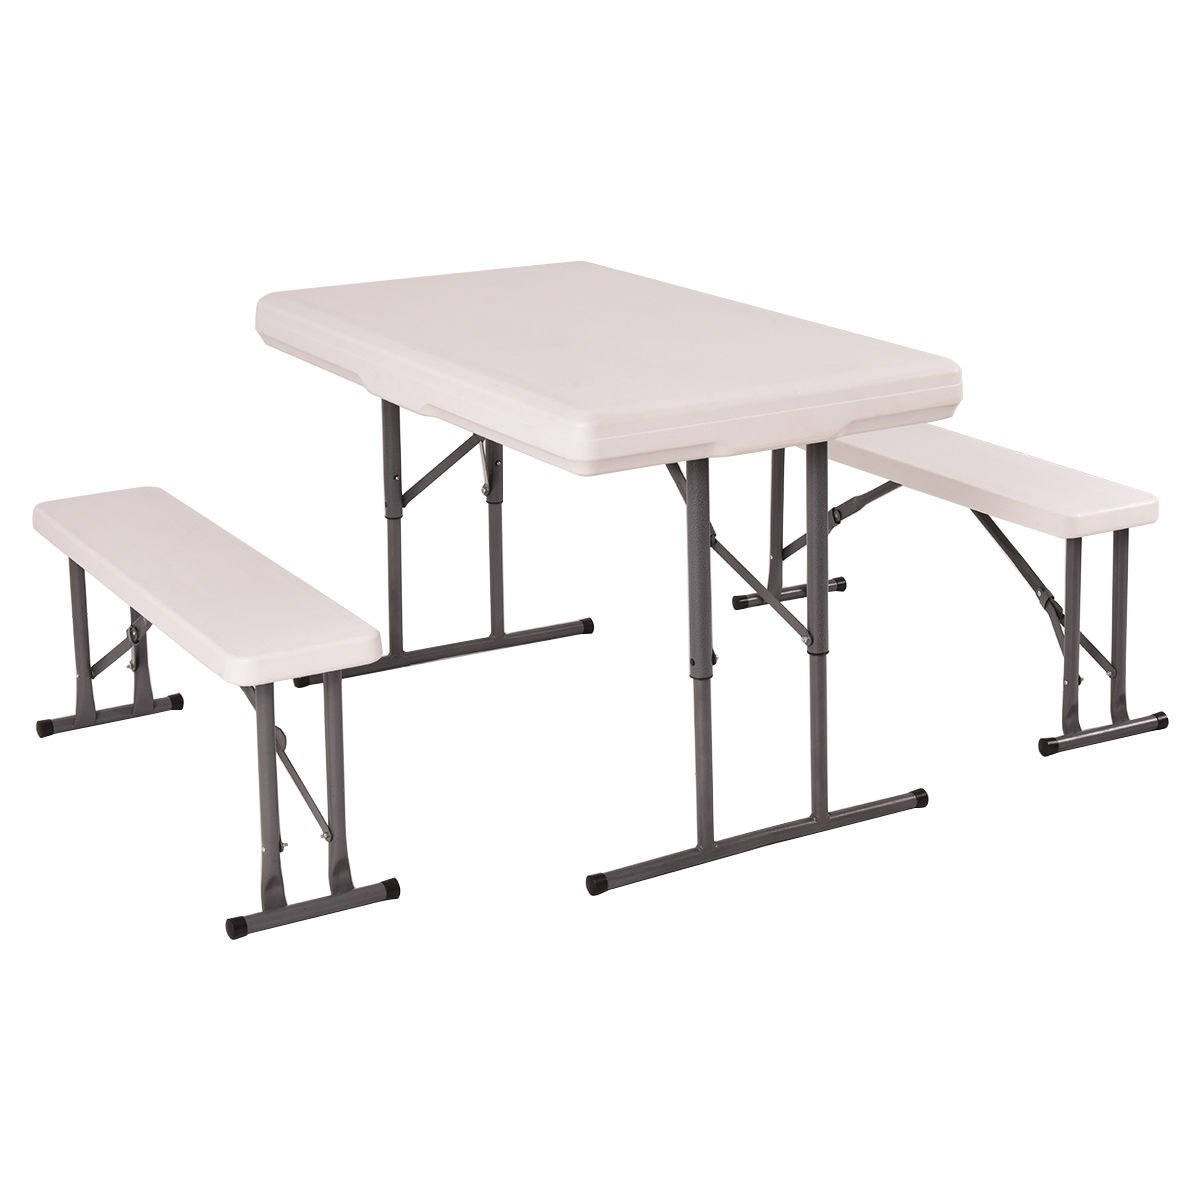 BUY JOY Table and Benches Set Chair Seat Folding Picnic Patio Garden Outdoor Furniture